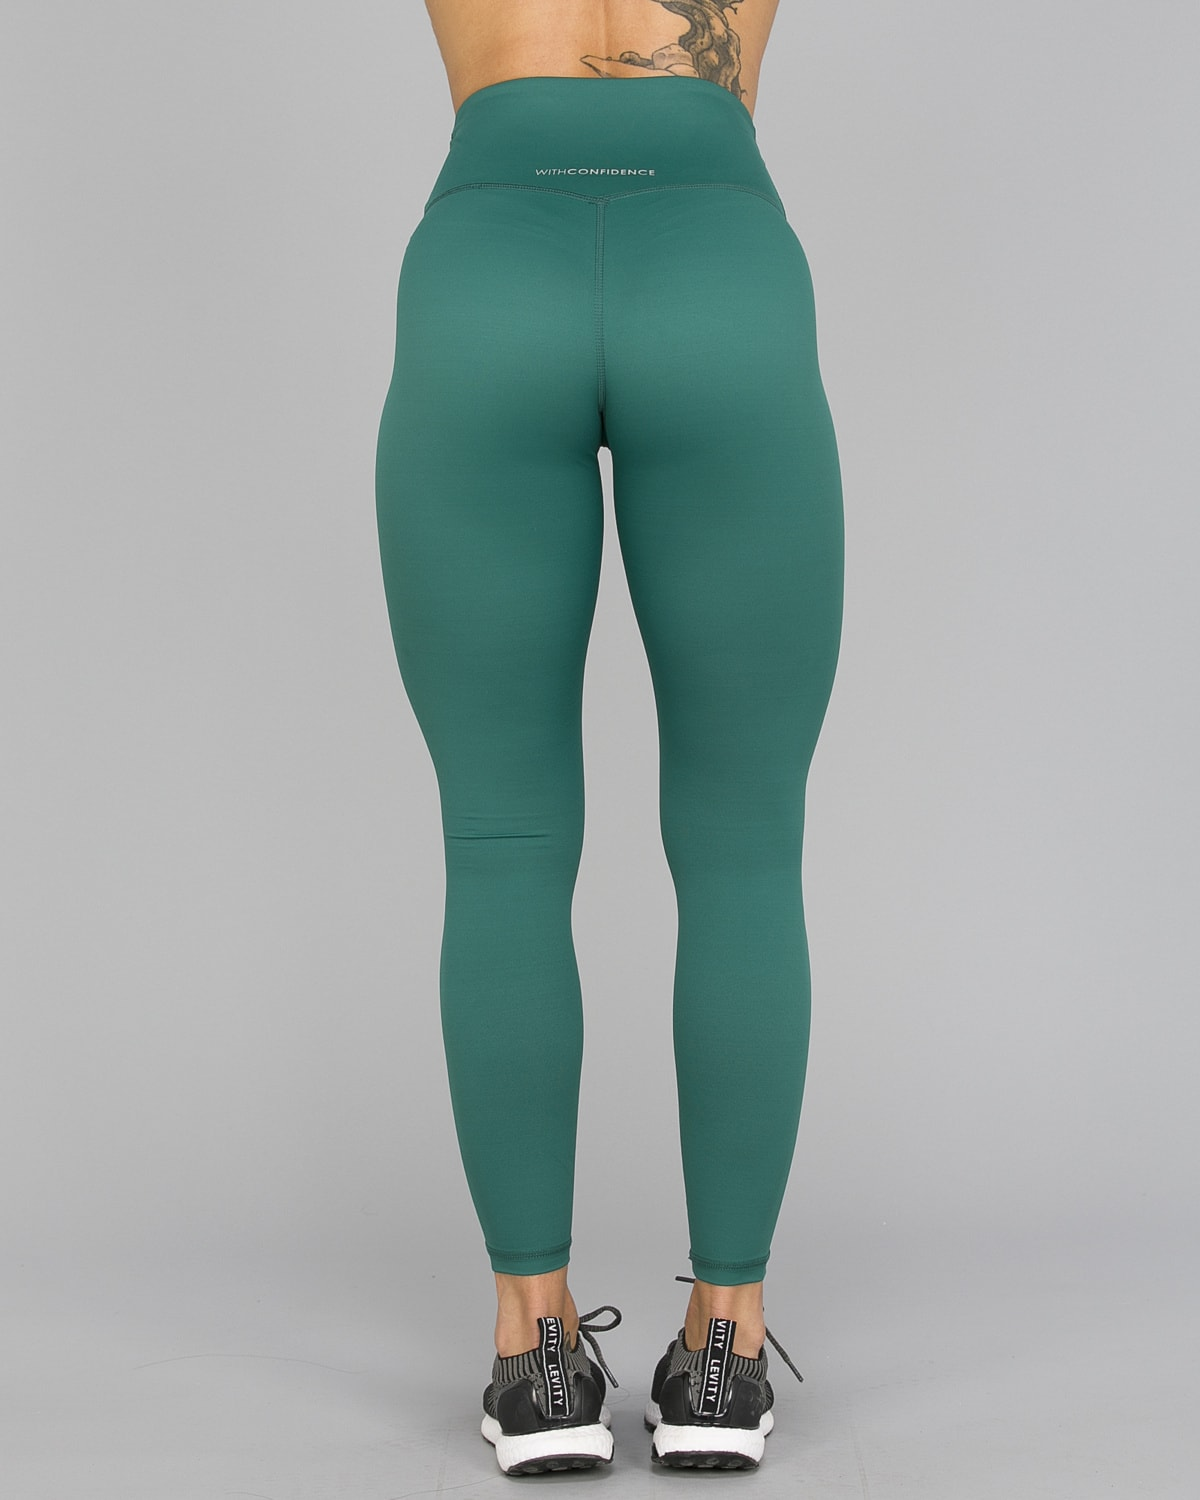 Workout Empire – With Confidence Shape Leggings – Emerald Green7